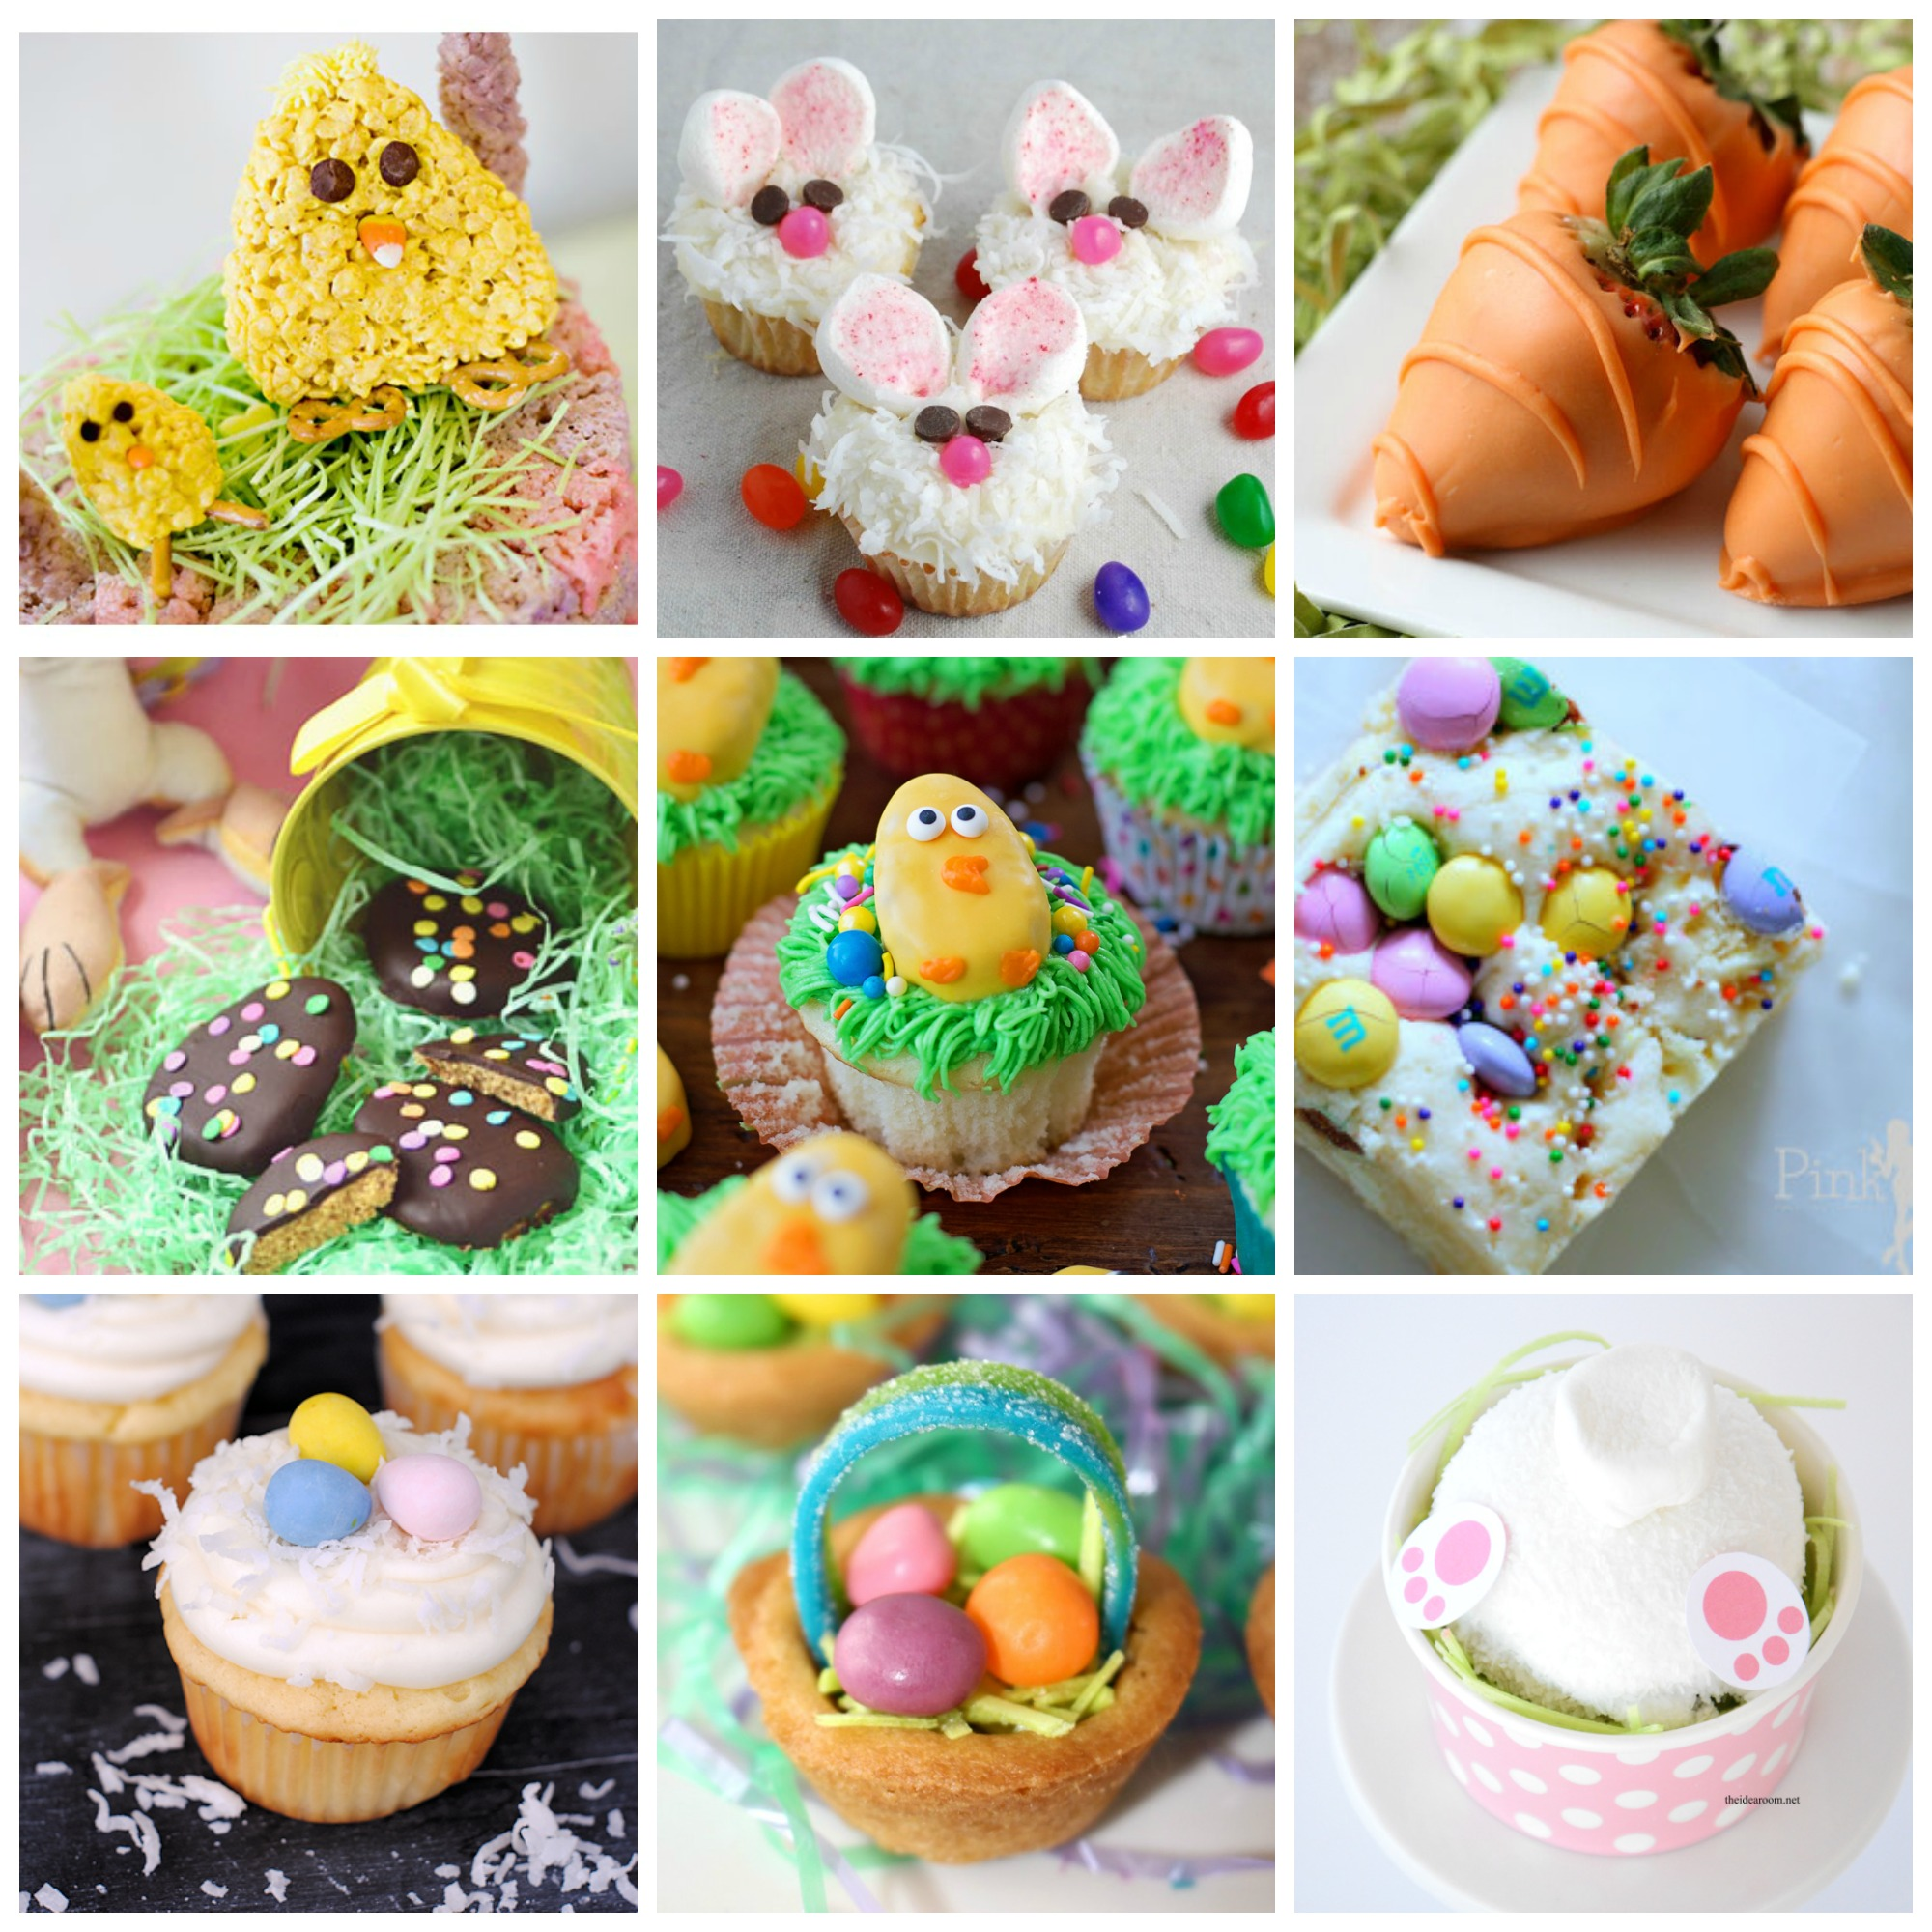 Easter desserts 20 ideas for you the country chic cottage for Good desserts for easter